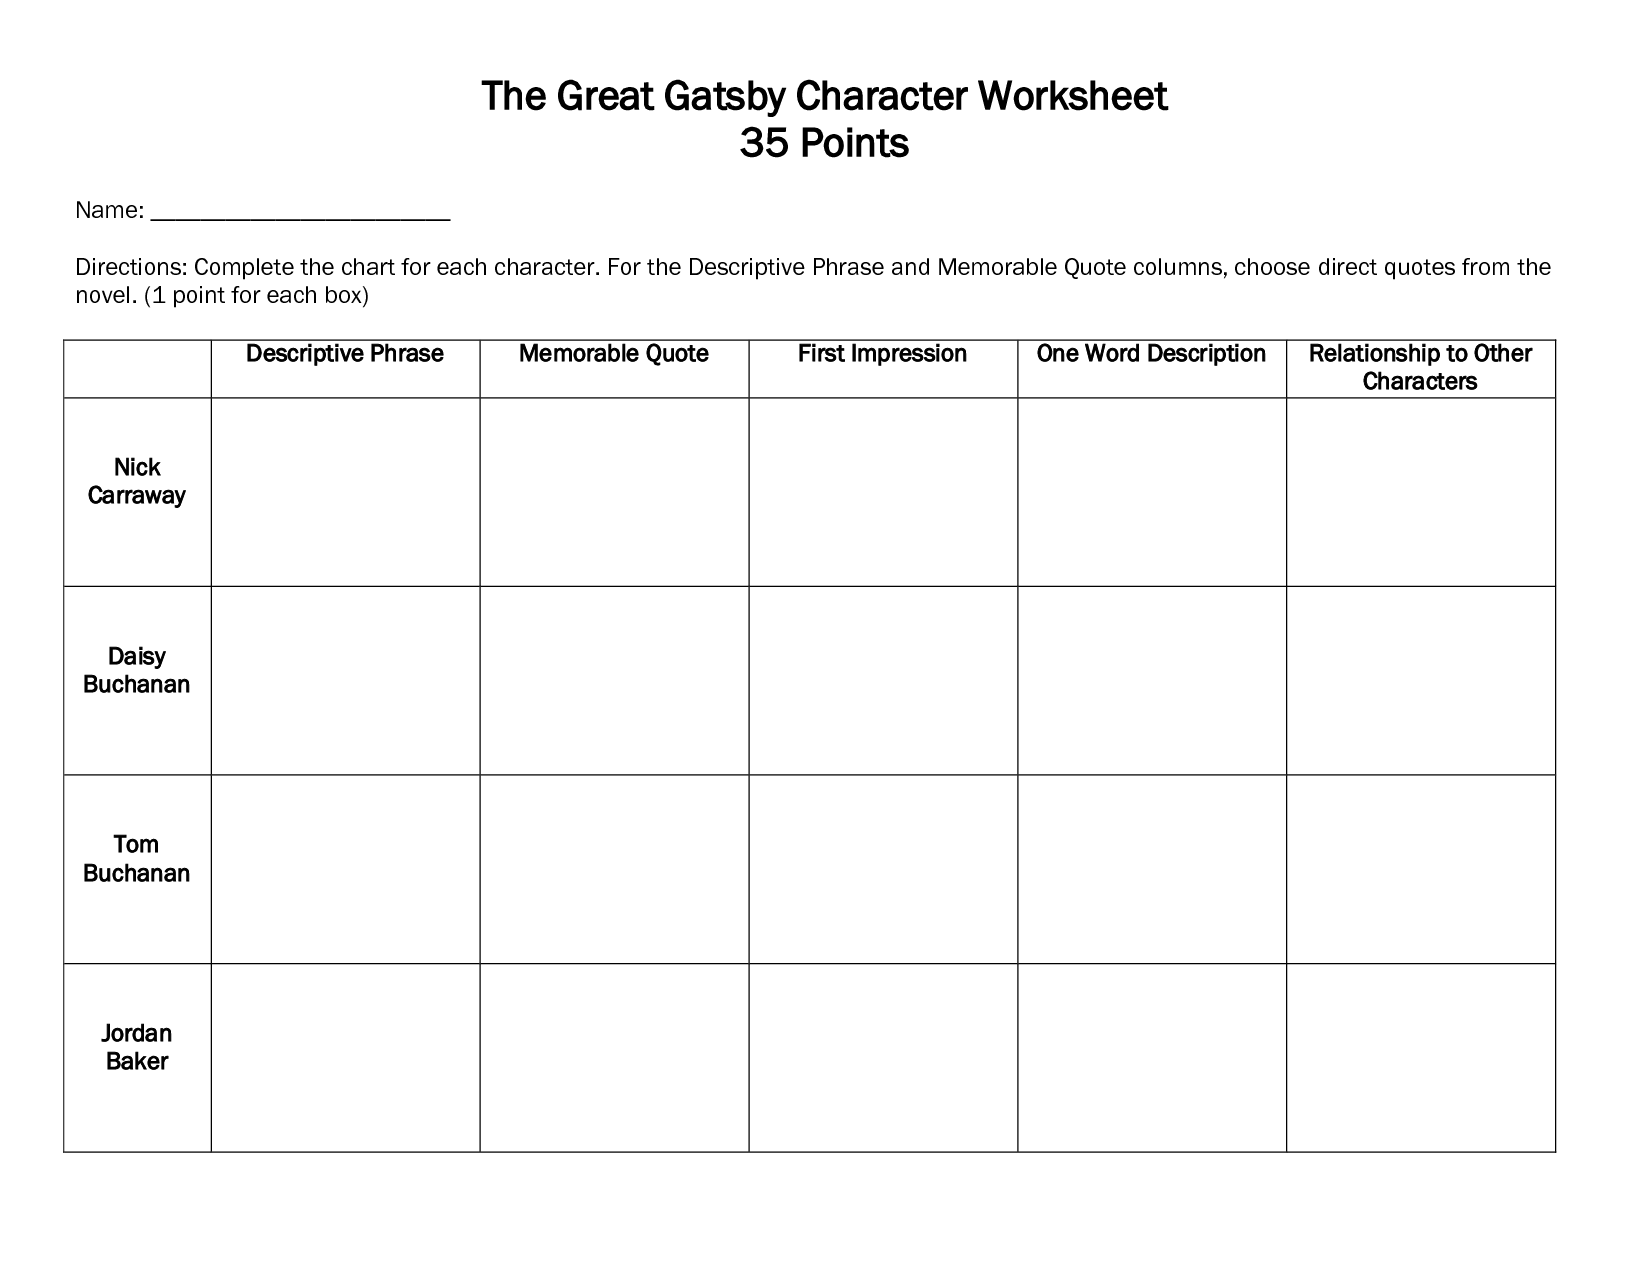 worksheets for great gatsby the great gatsby character worksheet worksheets for great gatsby the great gatsby character worksheet 35 points directions